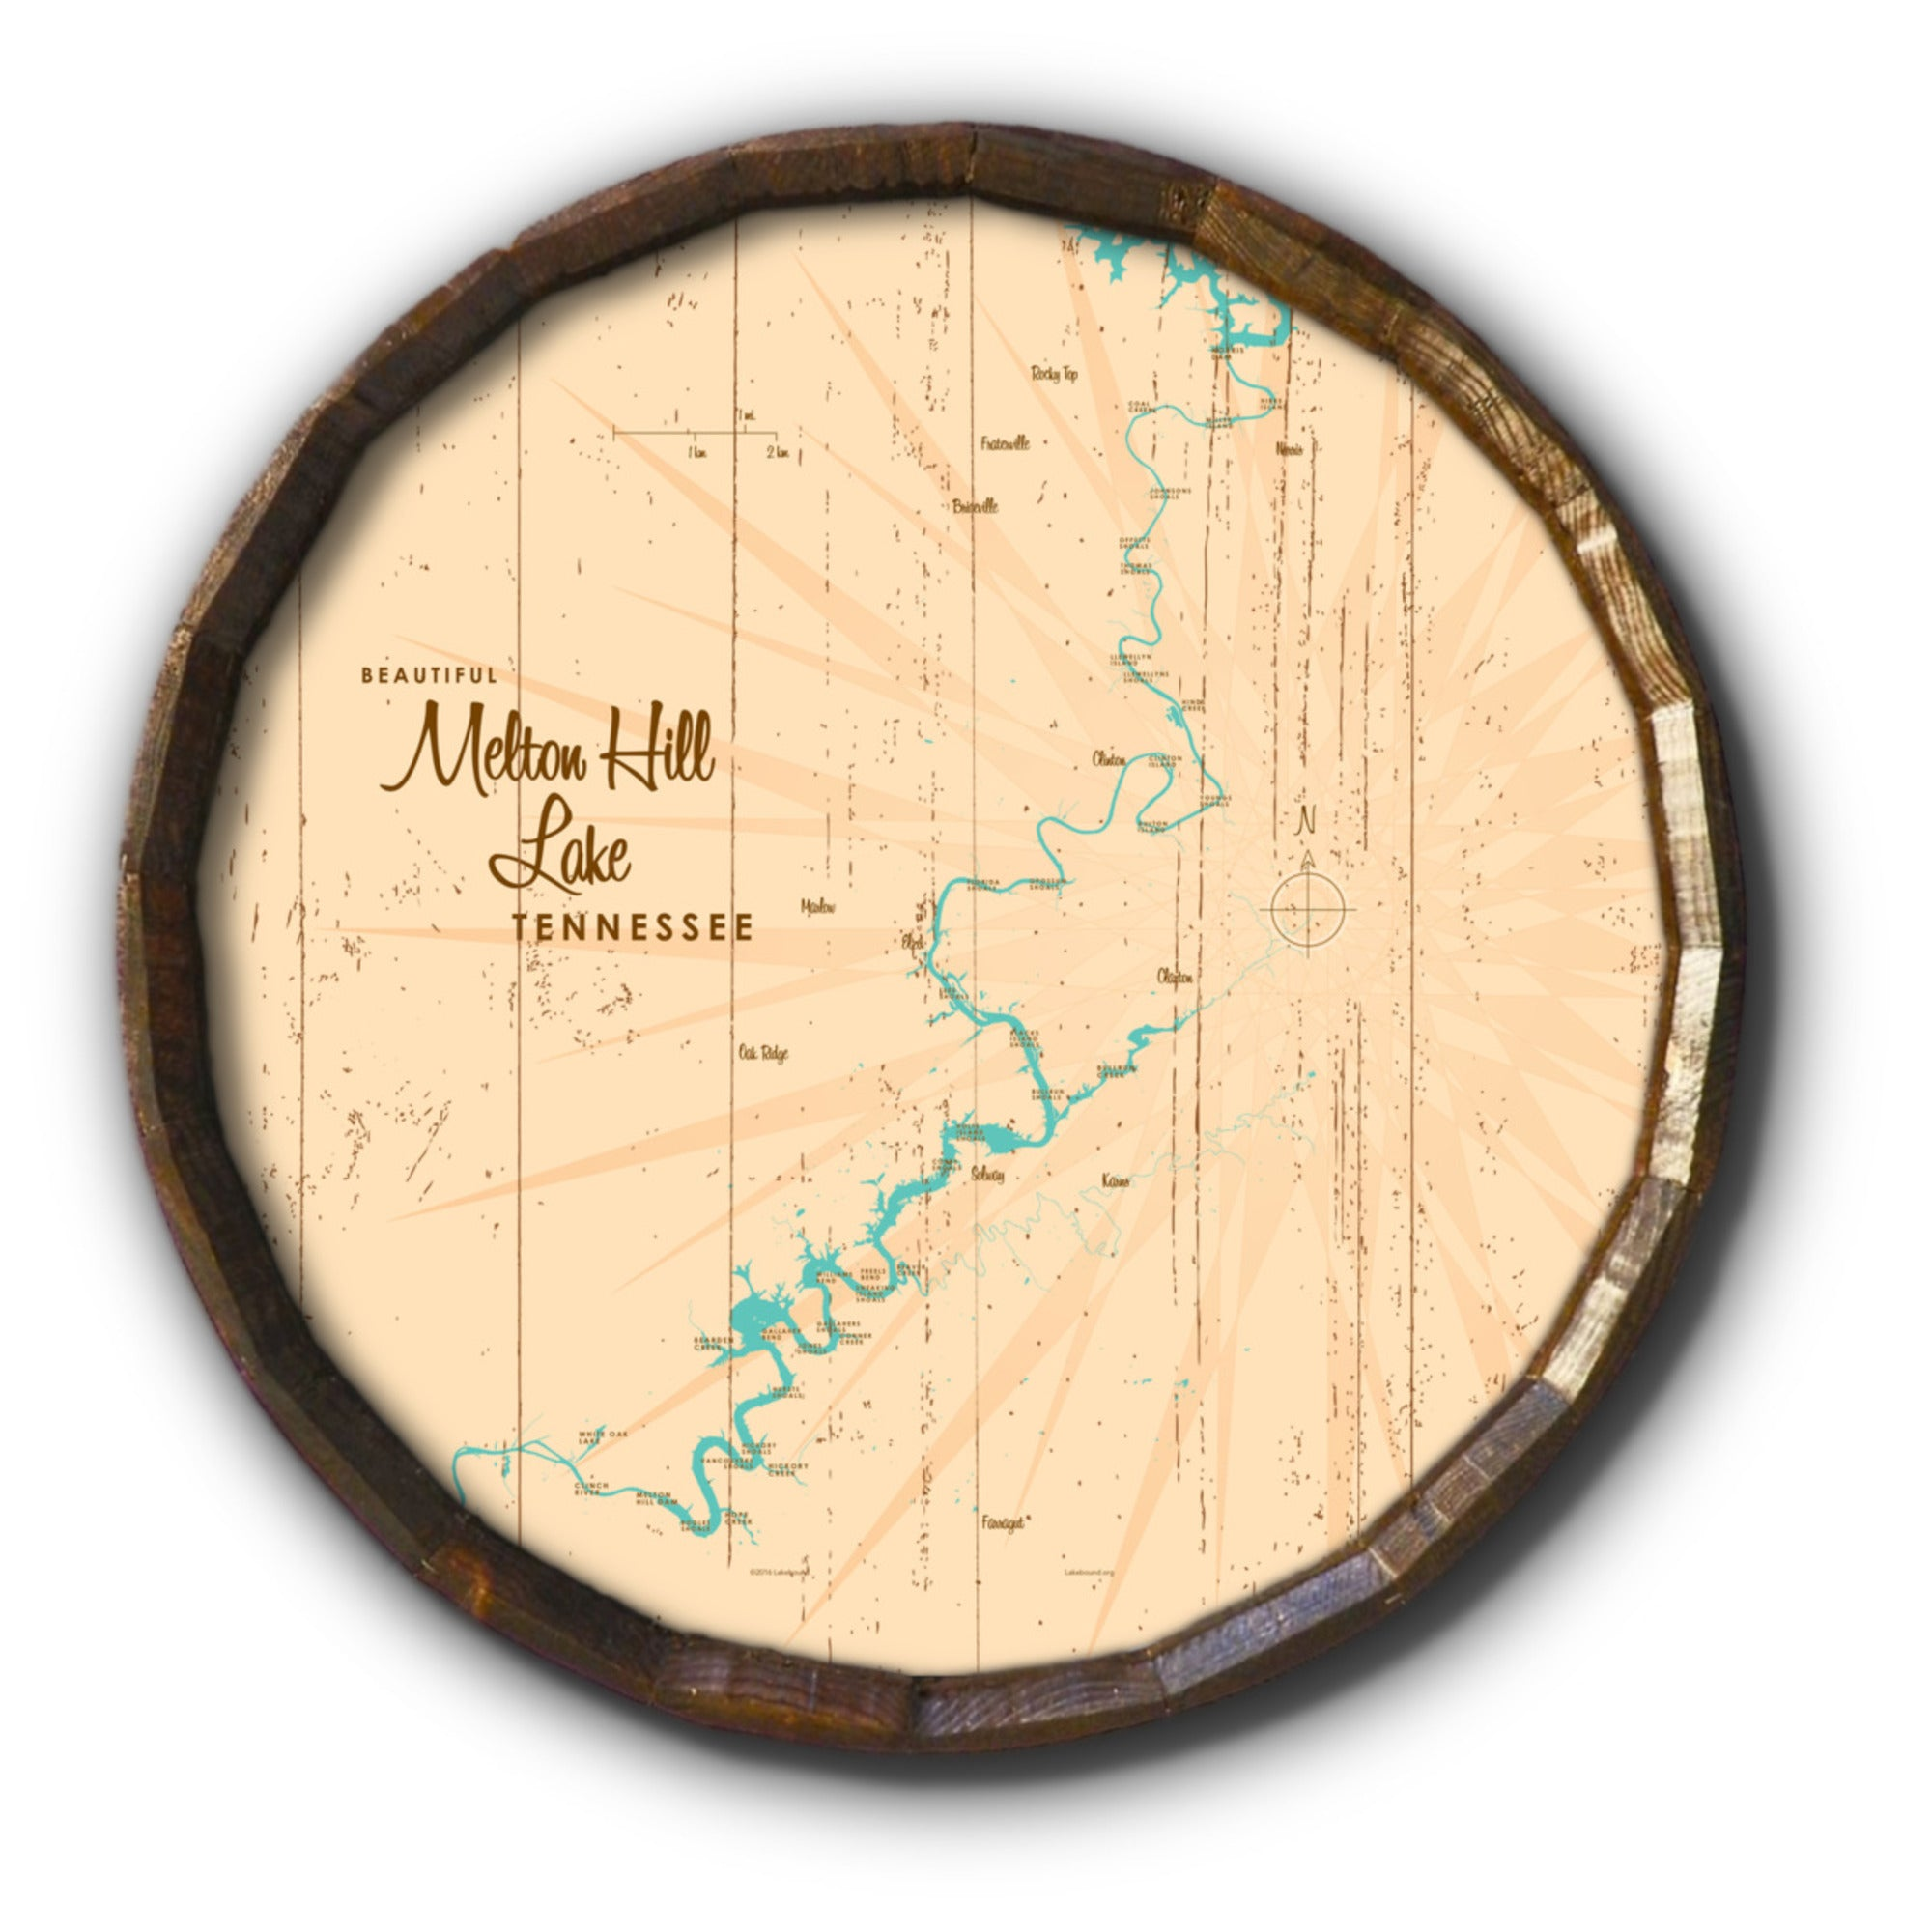 Melton Hill Lake Tennessee, Rustic Barrel End Map Art